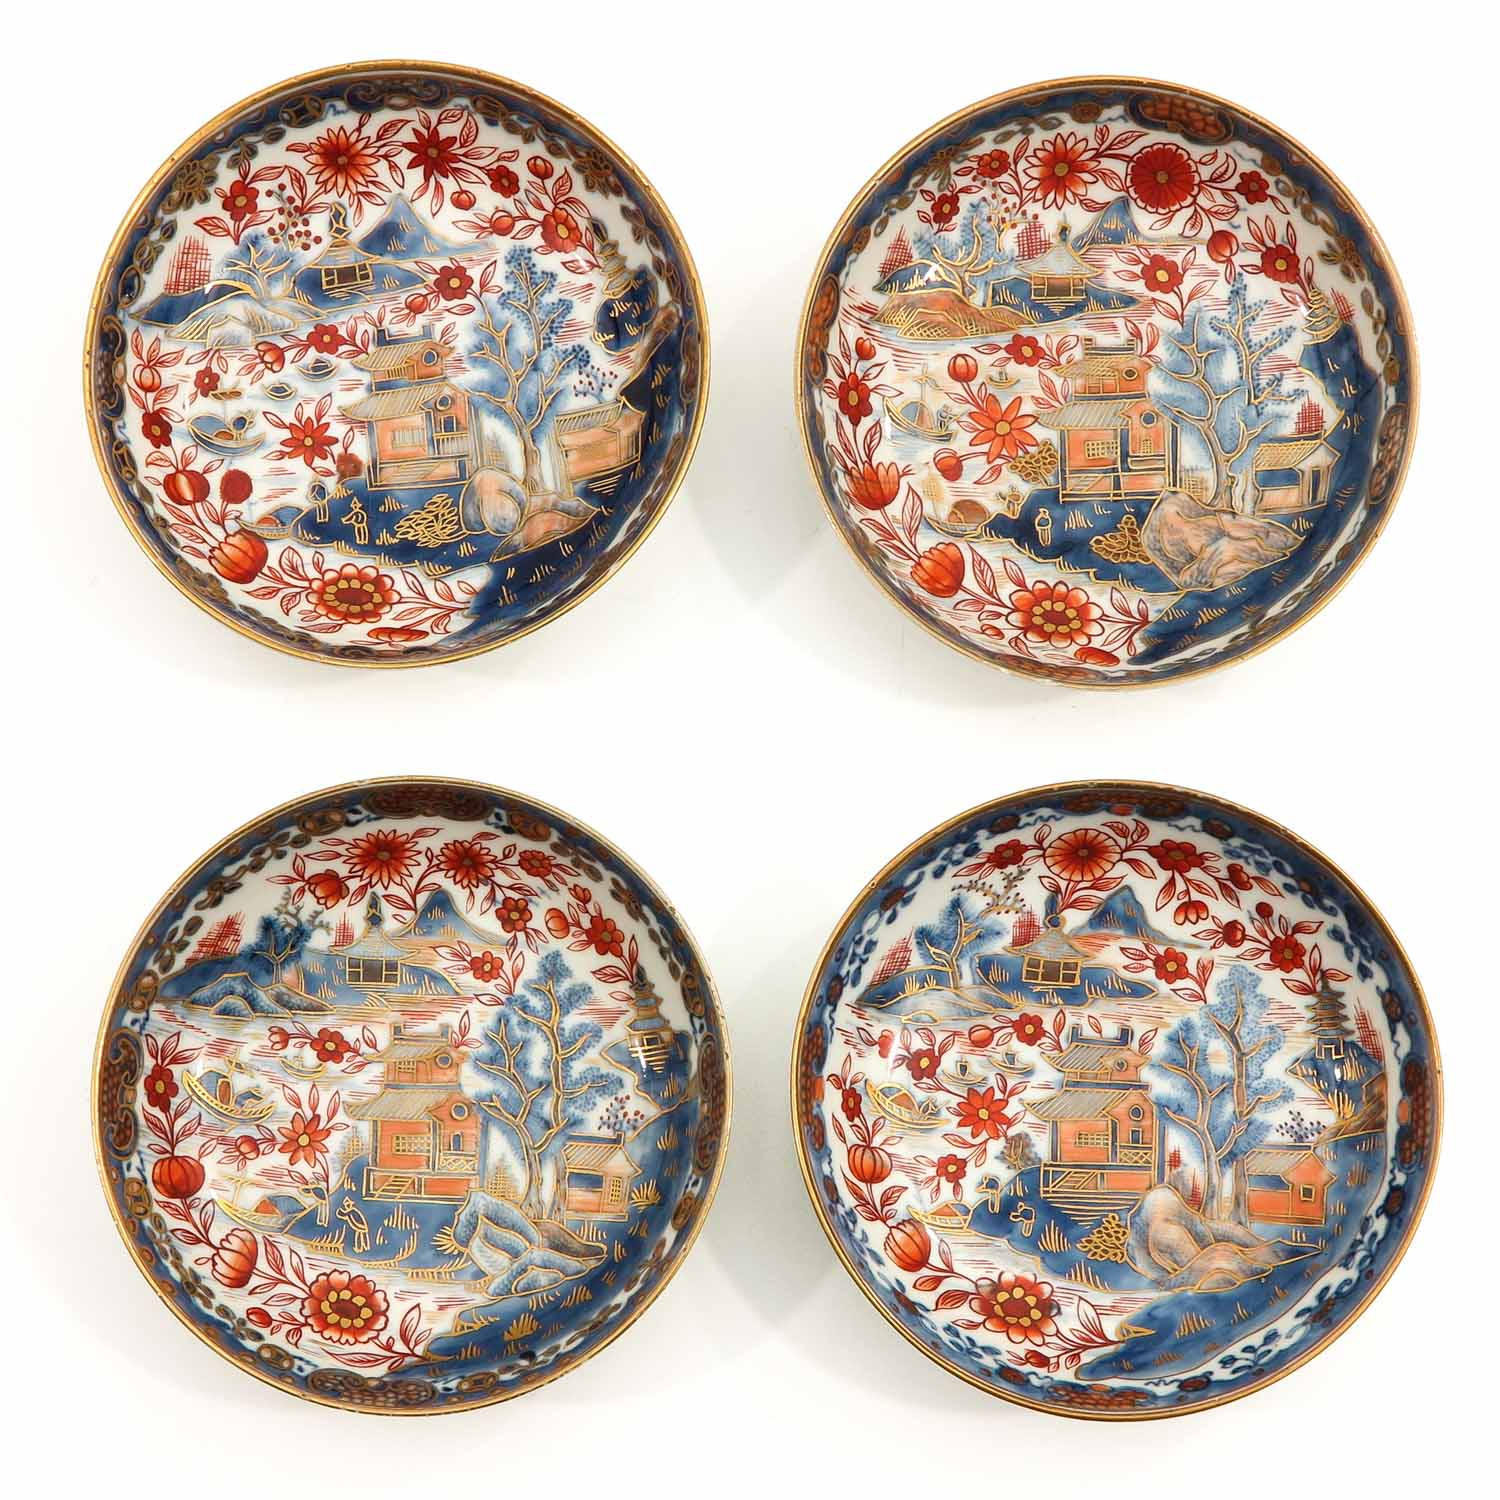 4 Imari Cups and Saucers - Image 7 of 10